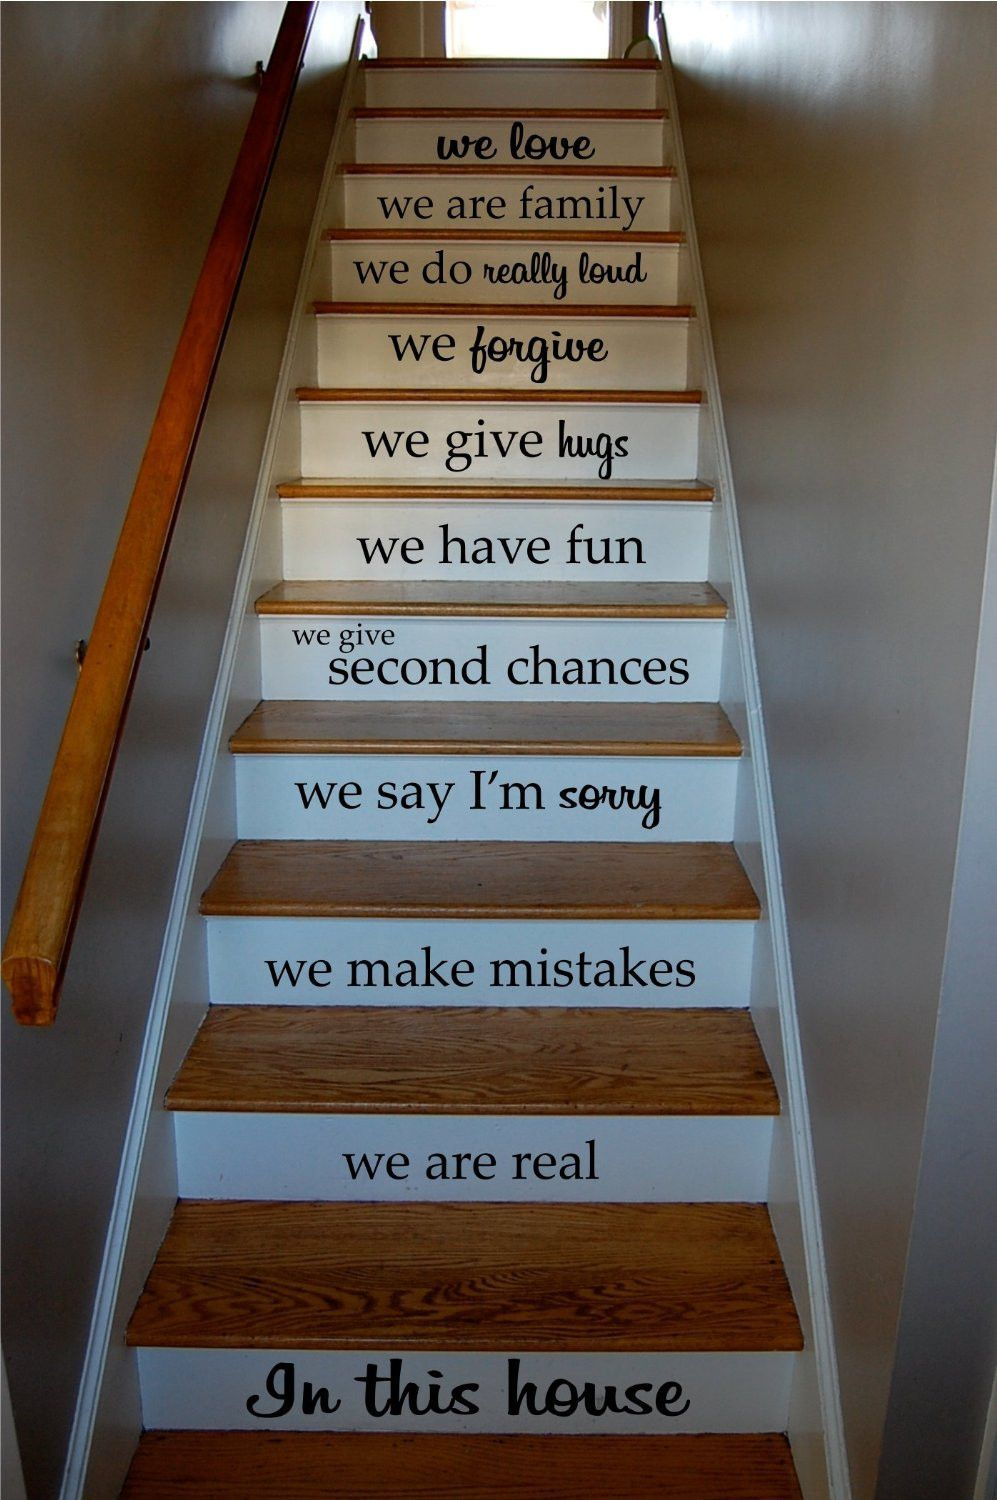 die besten 25 staircase decals ideen auf pinterest treppen w nde treppenaufgang dekor und. Black Bedroom Furniture Sets. Home Design Ideas